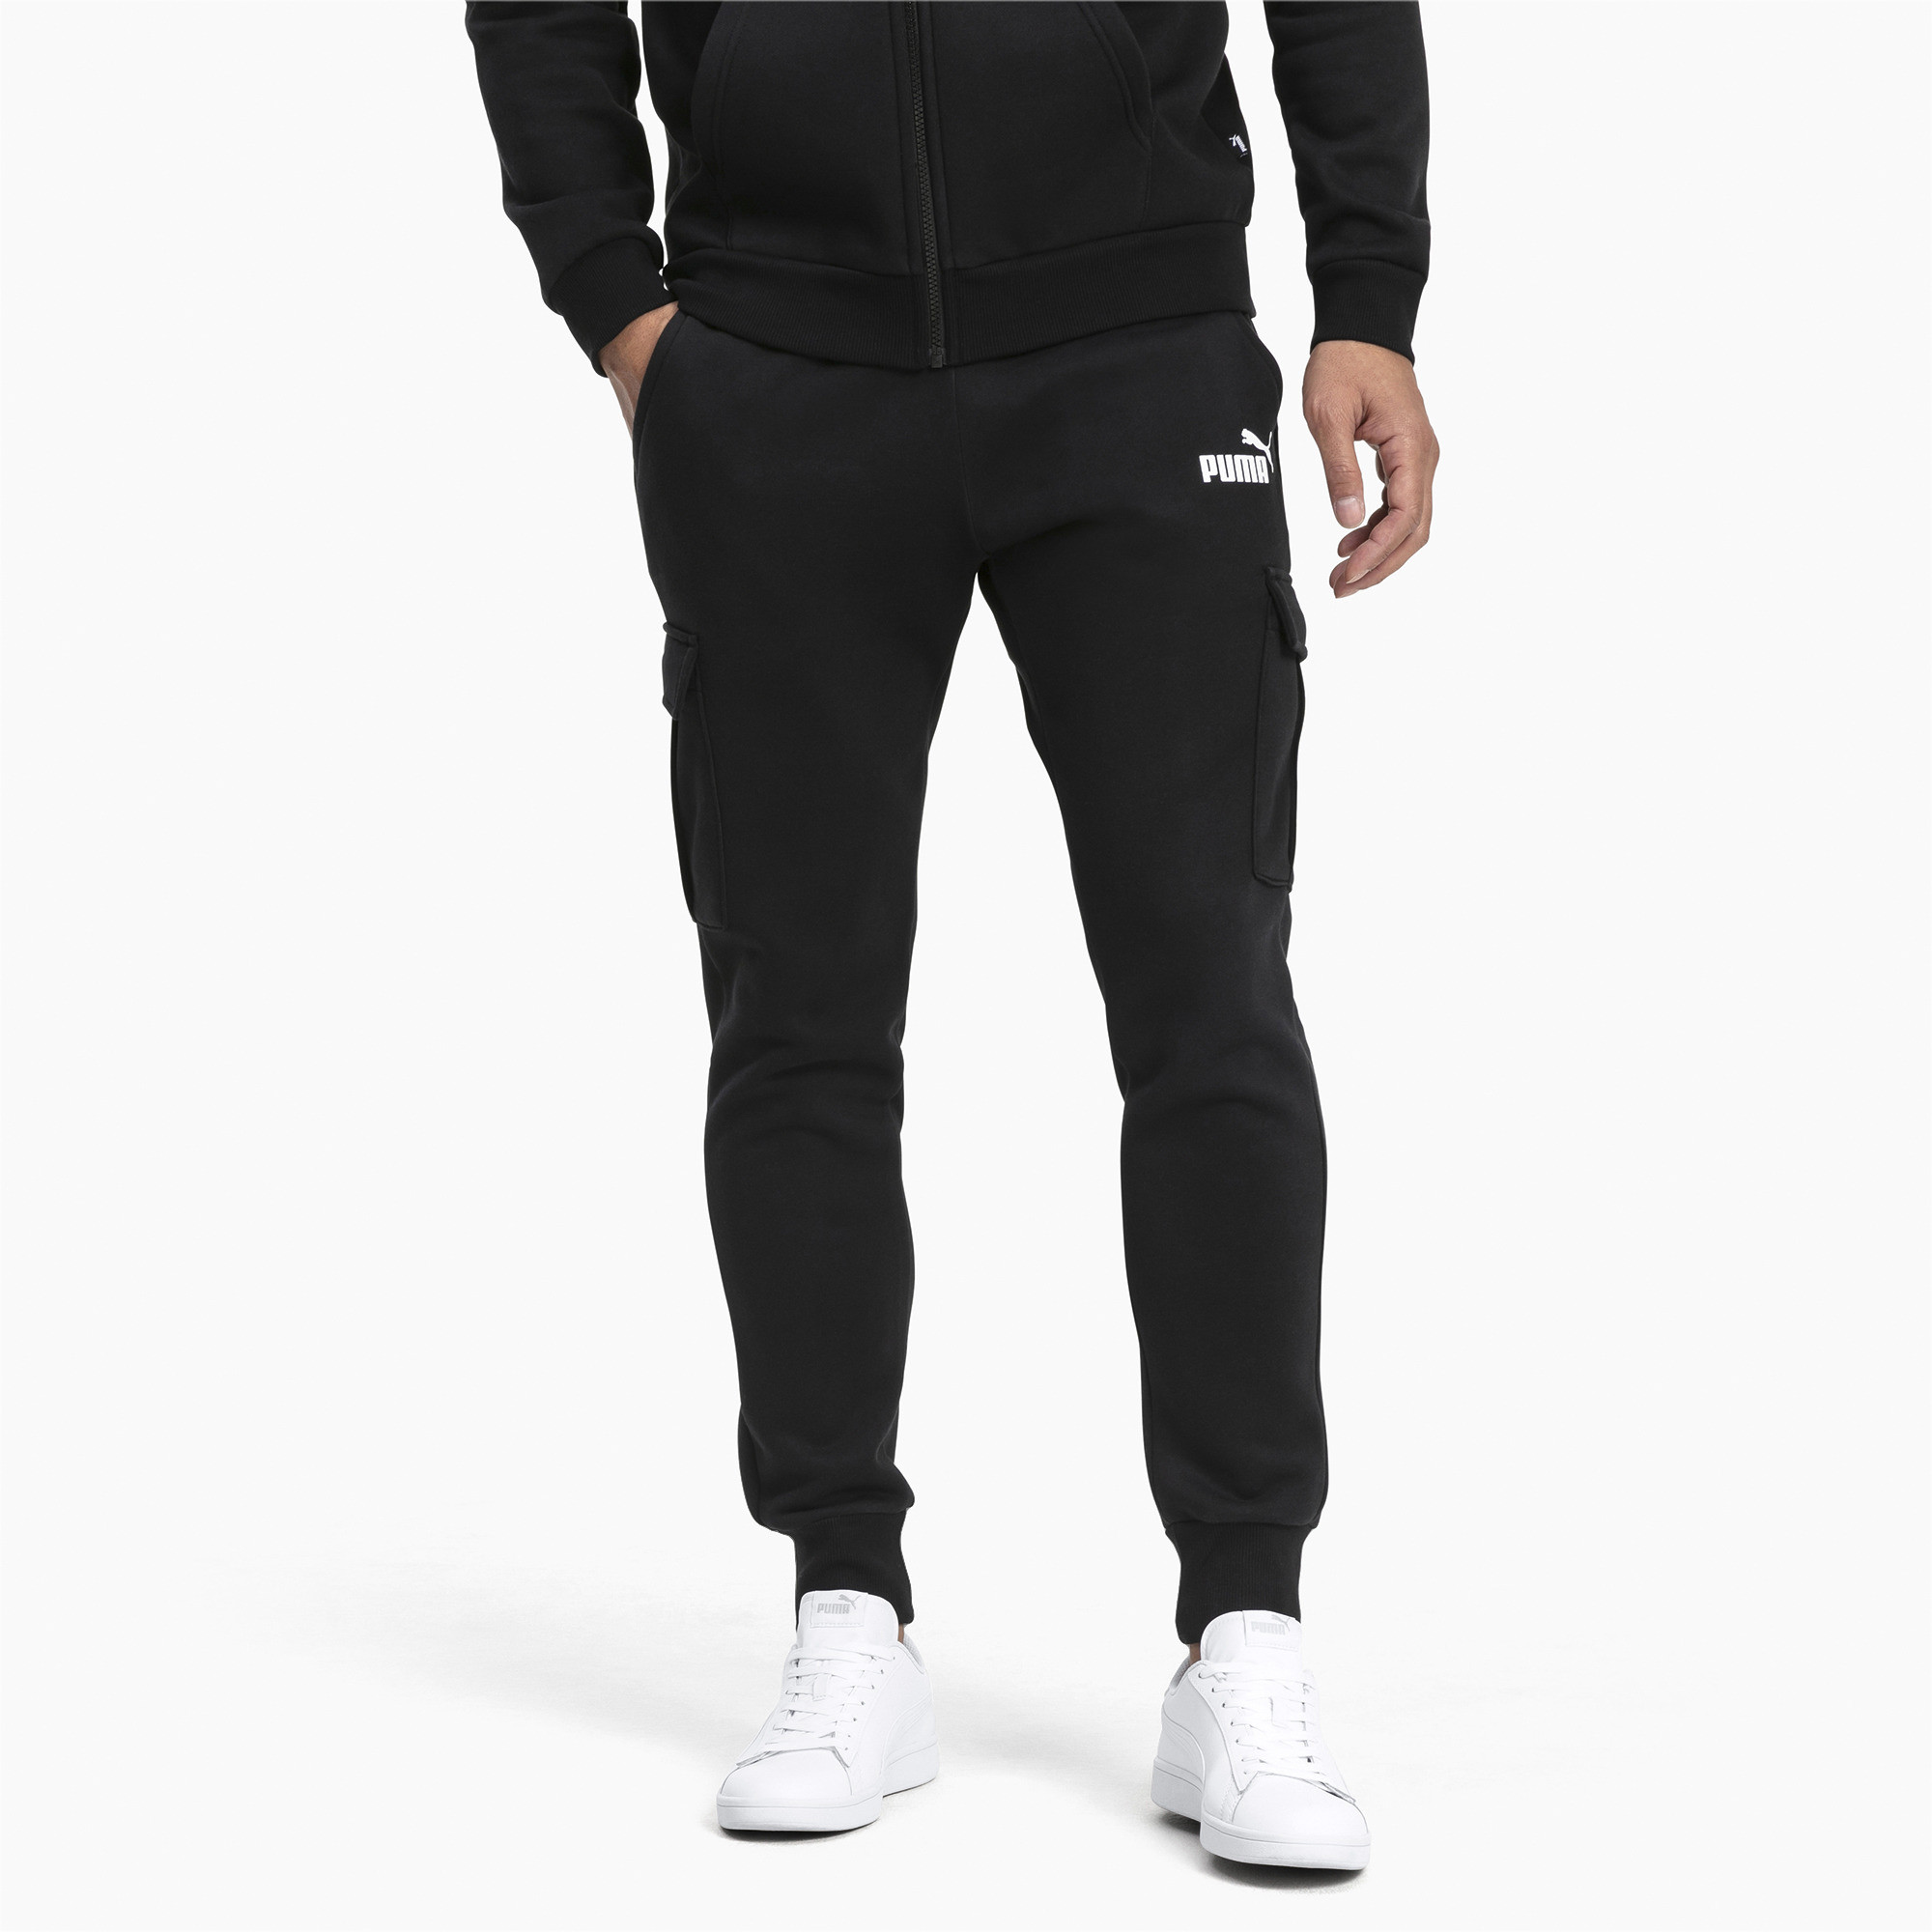 PUMA-Essentials-Men-039-s-Pocket-Pants-Men-Knitted-Pants-Basics thumbnail 7